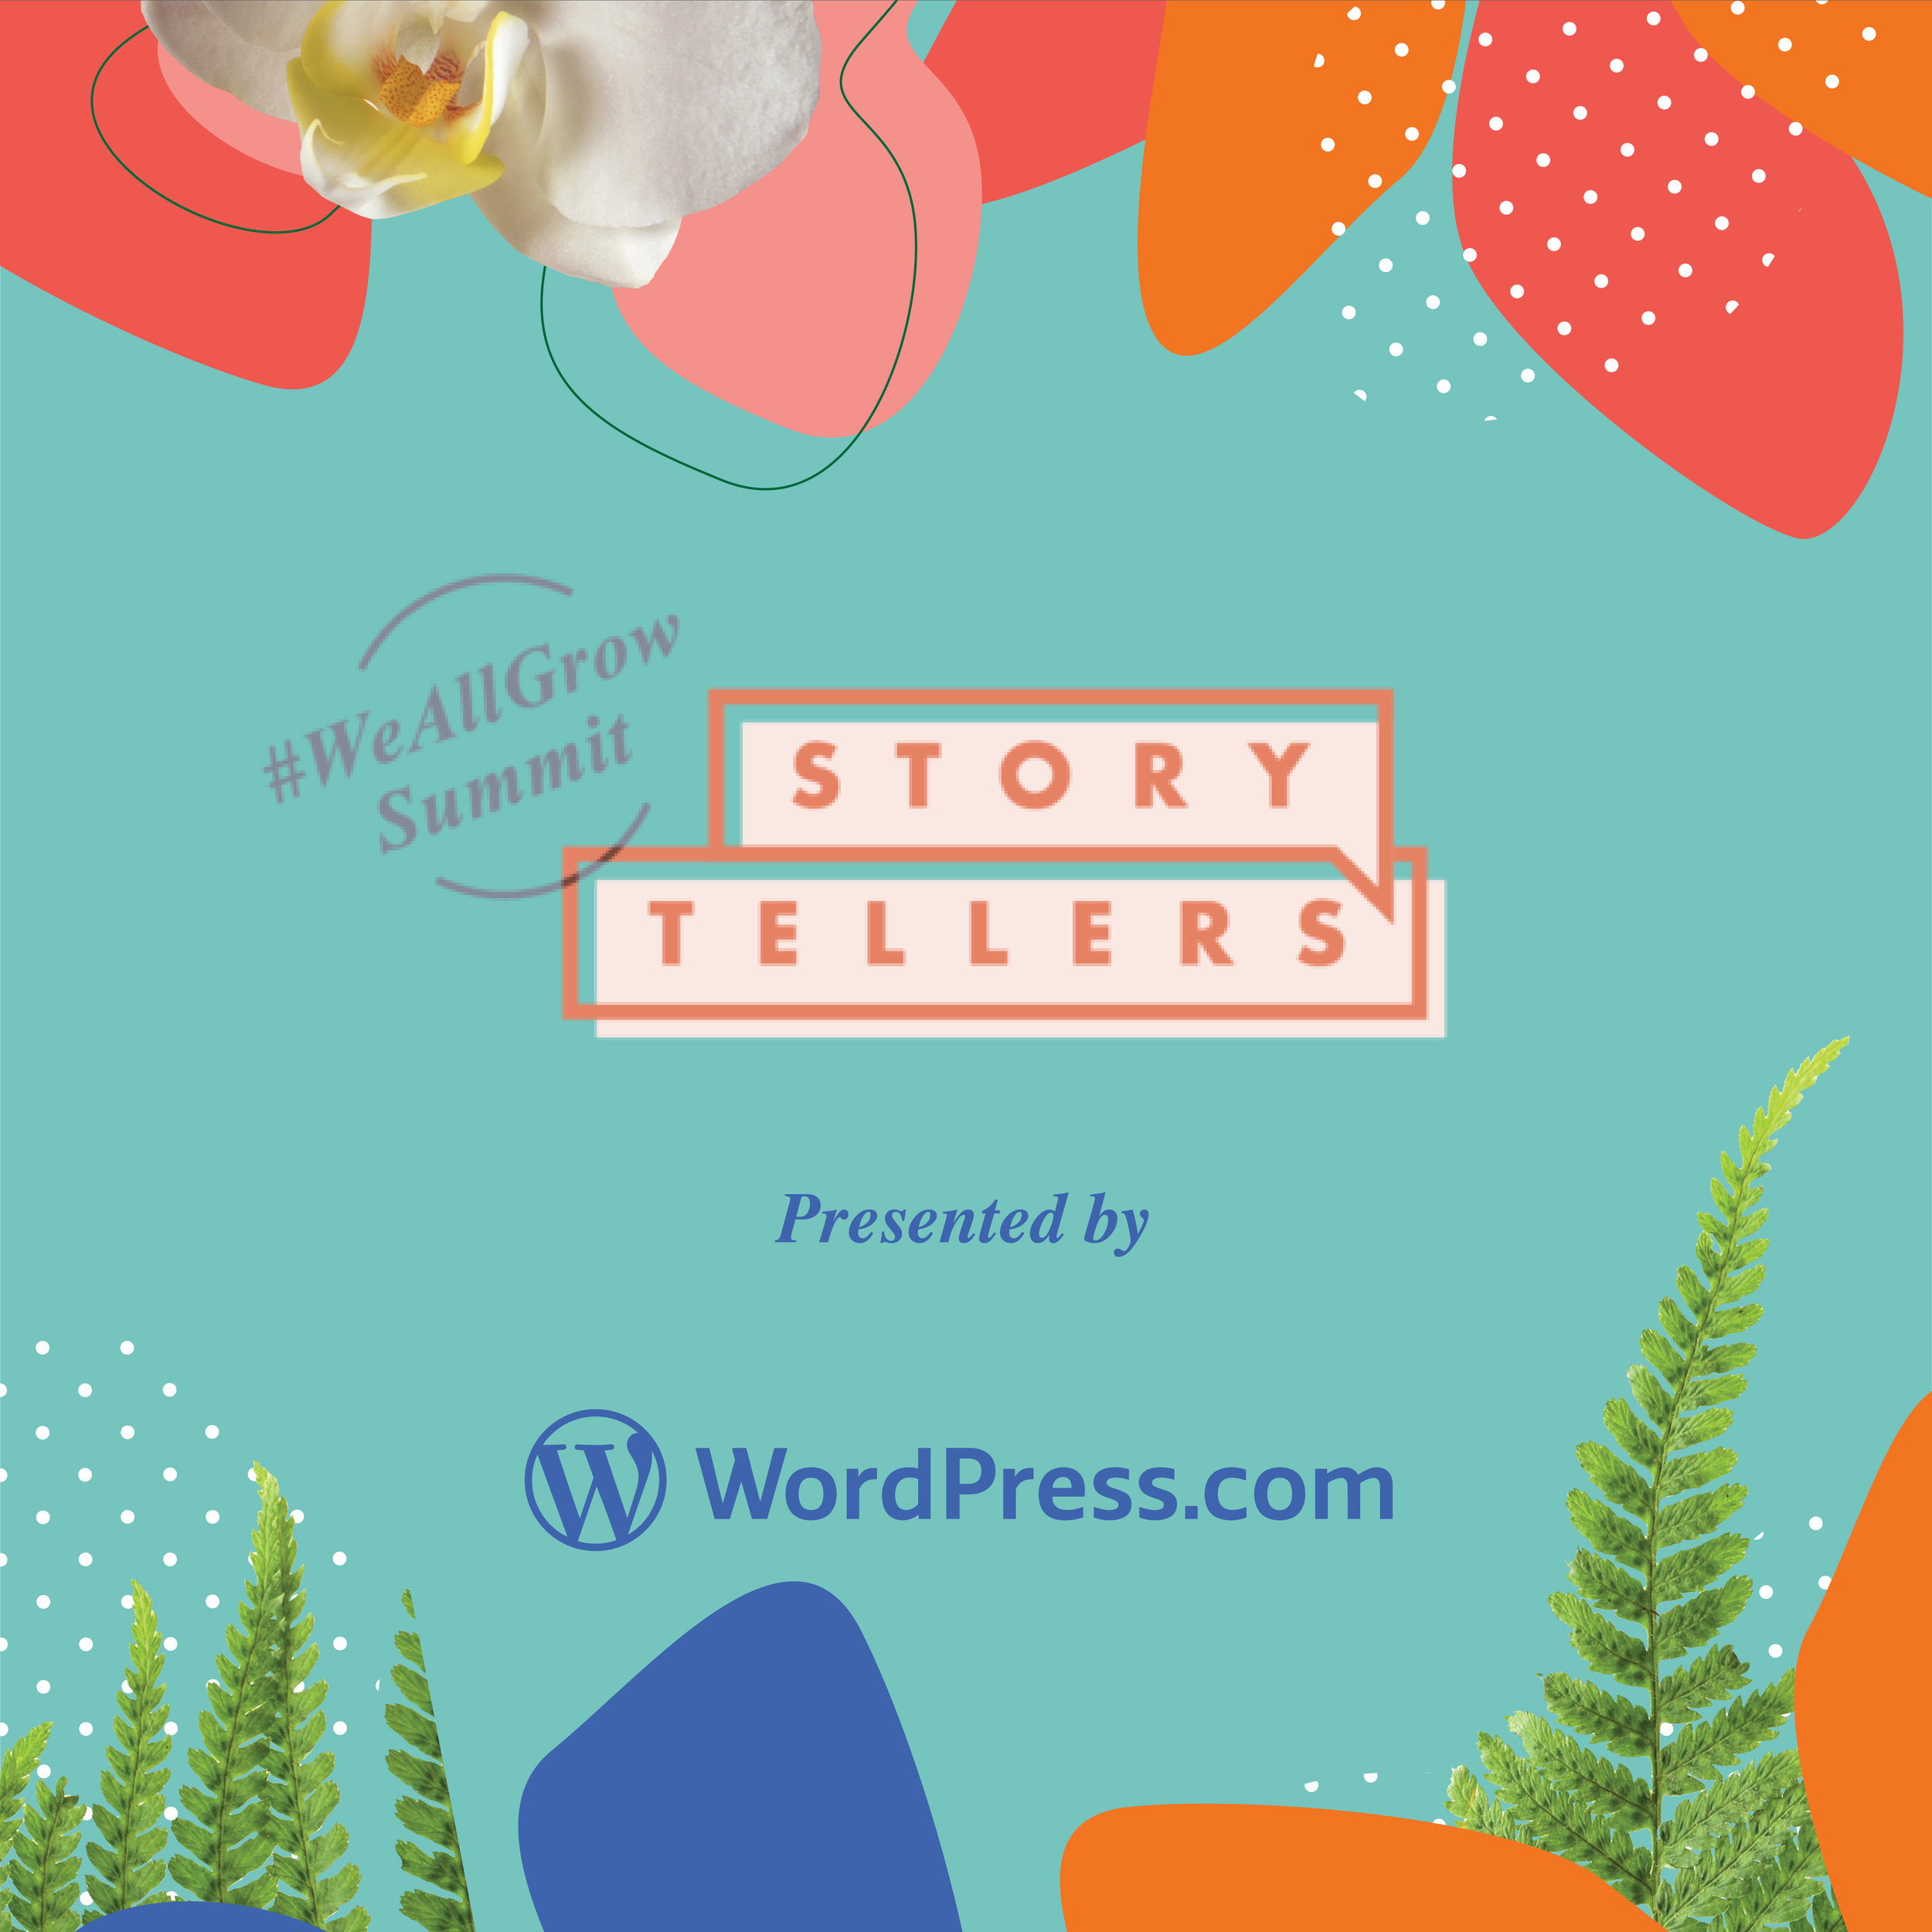 WordPress.com Storytellers 2019 Announcement